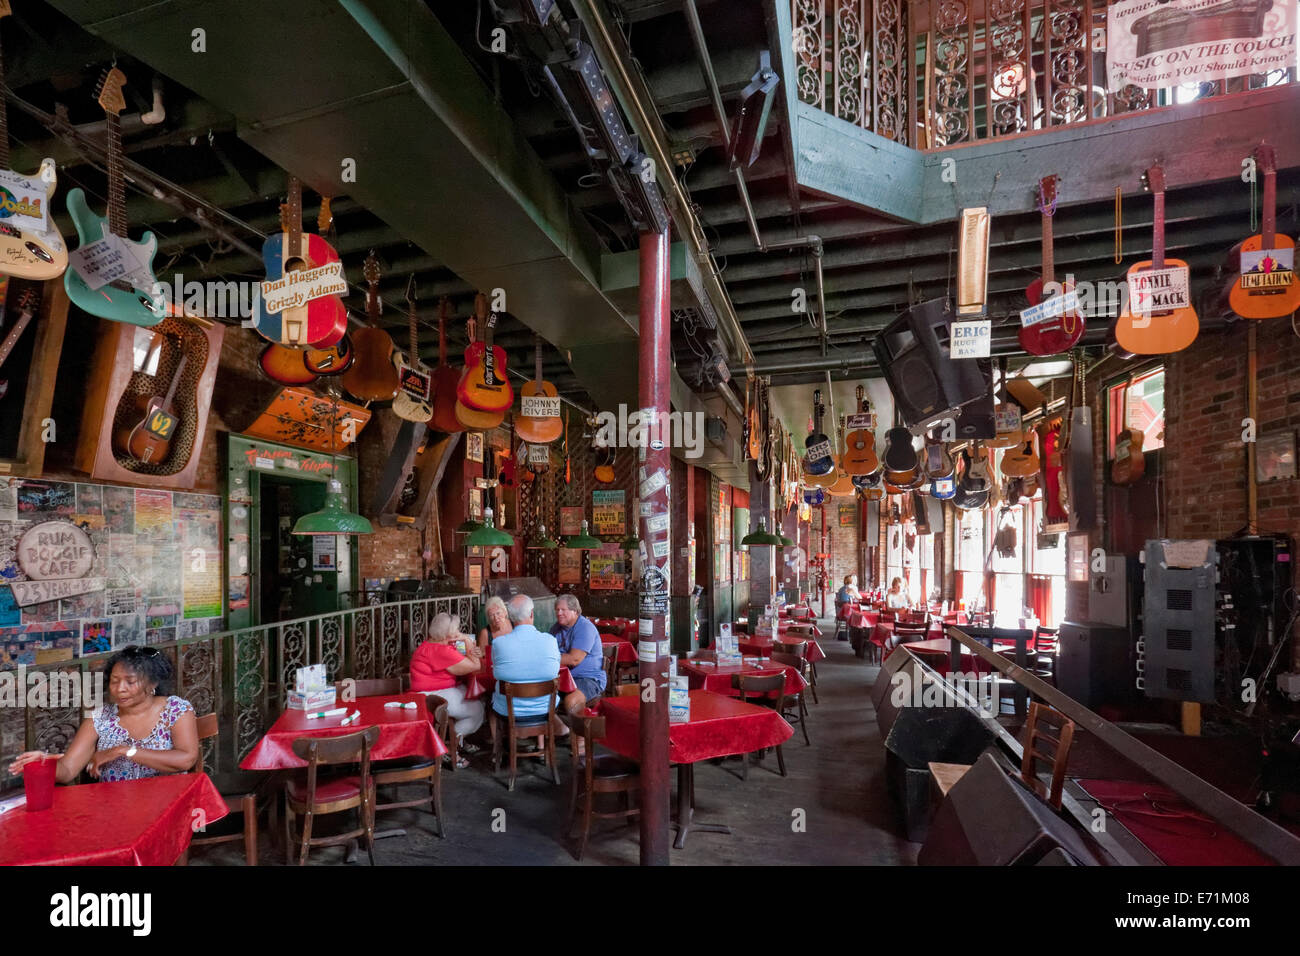 Rum Boogie Cafe - Memphis, Tennessee - Stock Image